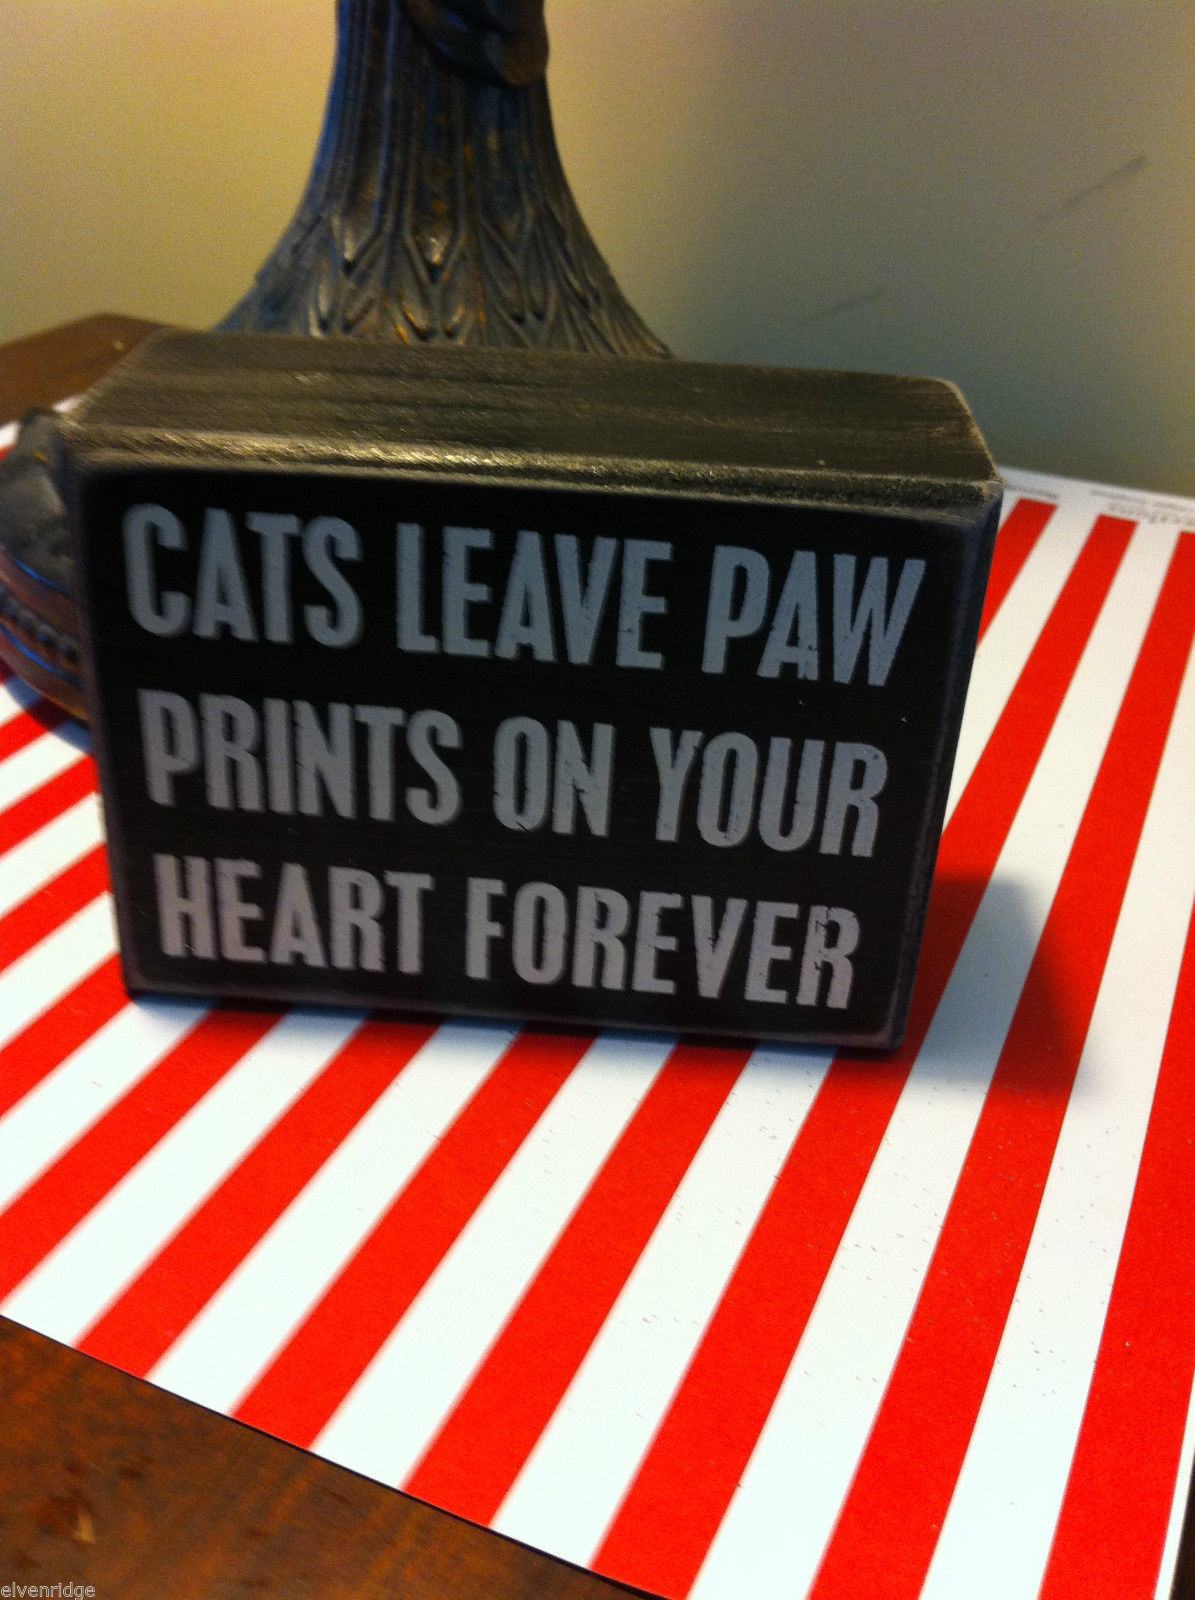 Black Wooden Box Sign Cats leave paw prints on your heart forever